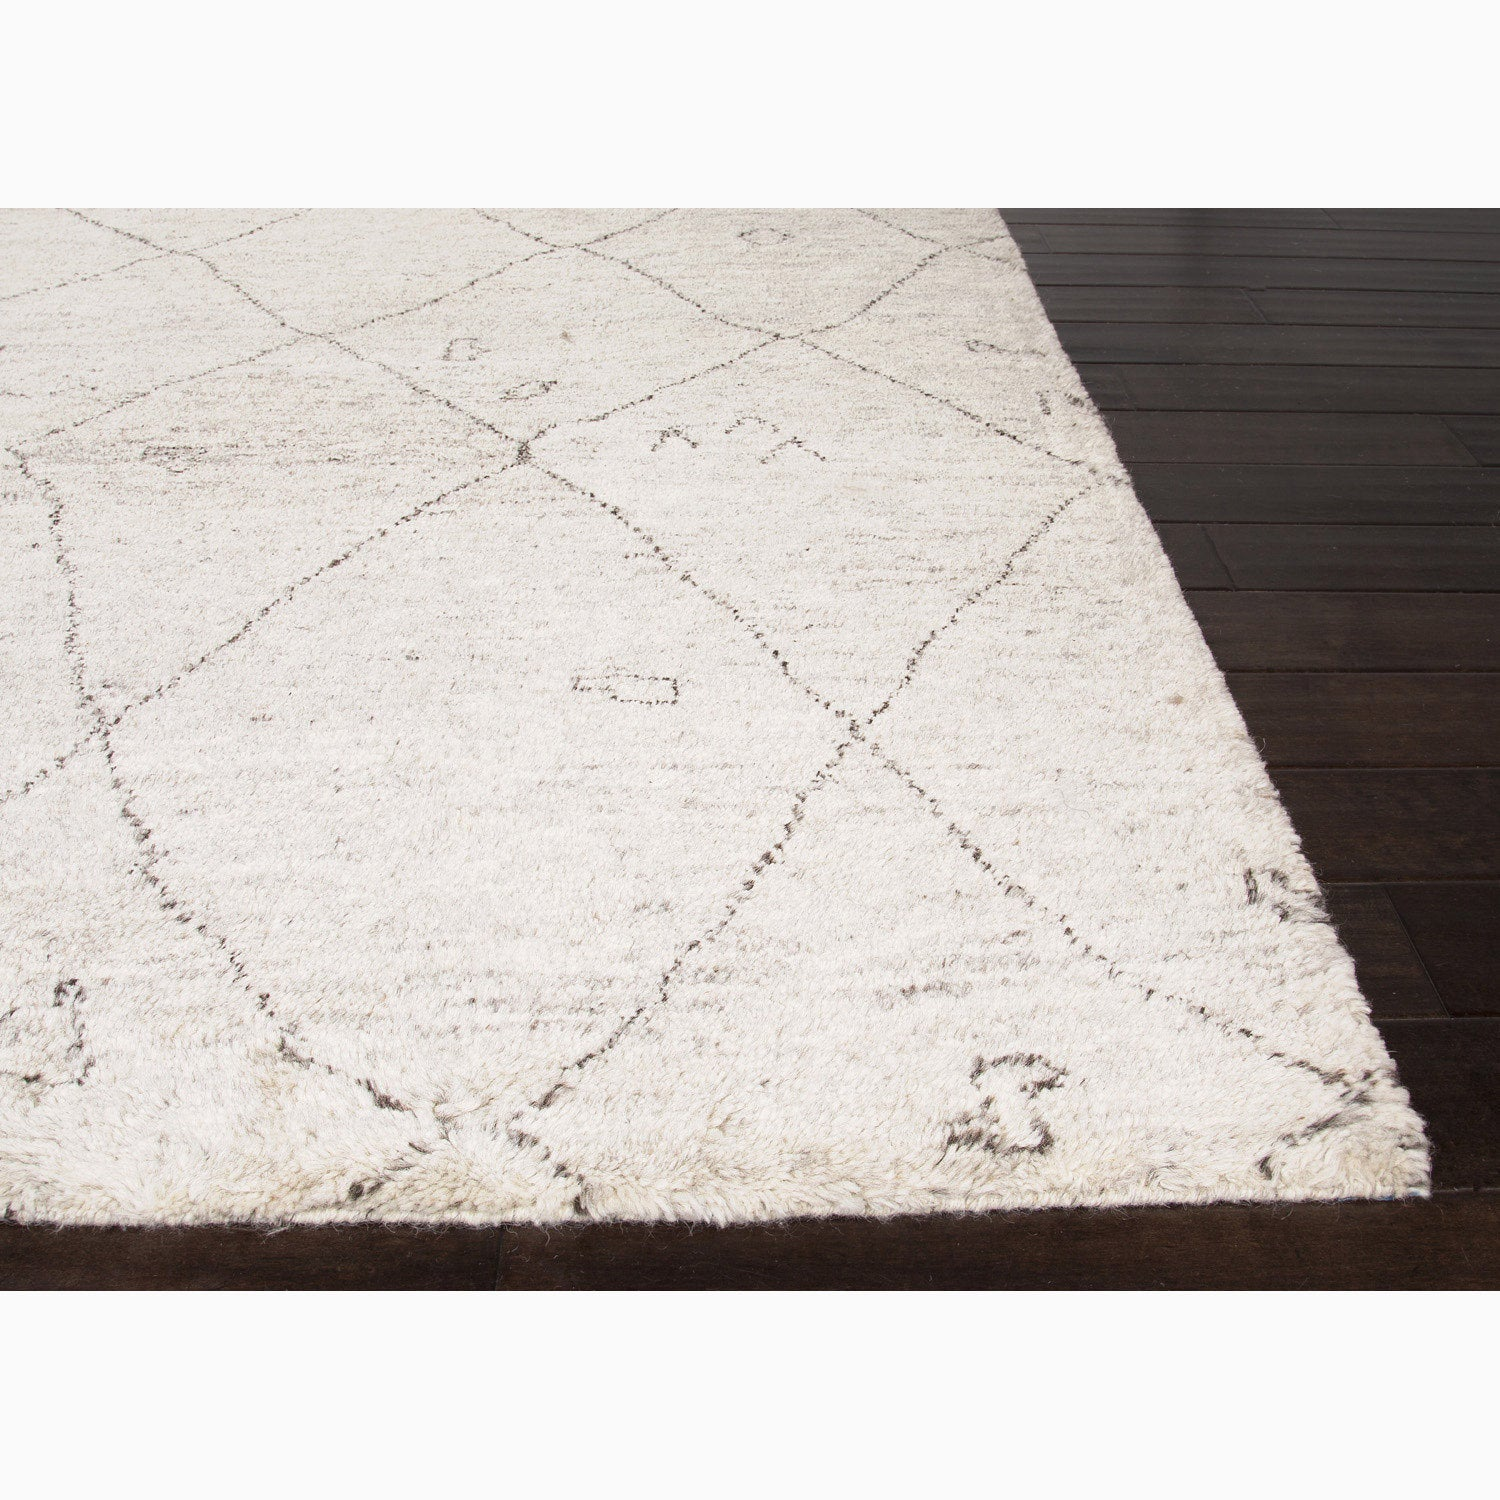 cream deals on line get grey cheap collection area quotations safavieh and shopping at guides find rug cottage